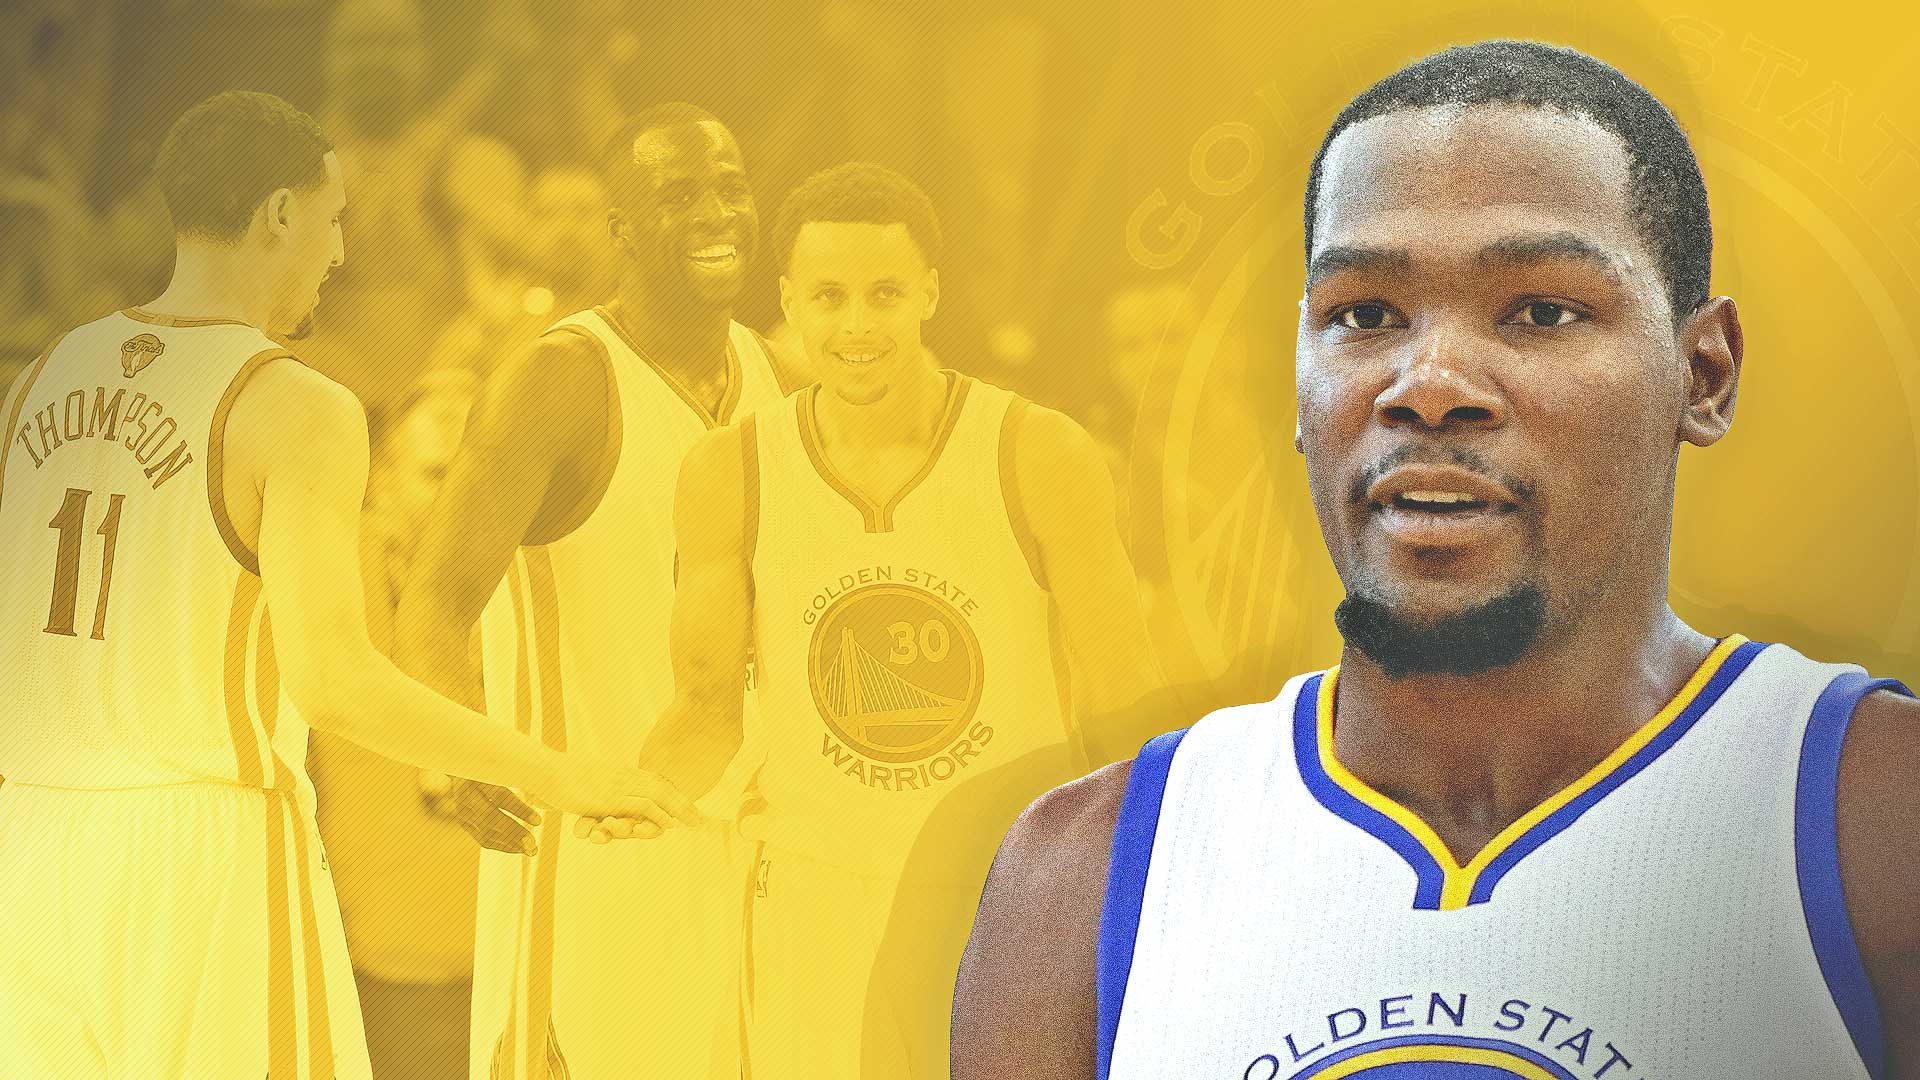 https://i1.wp.com/images.performgroup.com/di/library/sporting_news/83/11/illo-kevin-durant-warriors-ftr-111715_vvc3jvn6tmis1hbhoy14qrj1b.jpg